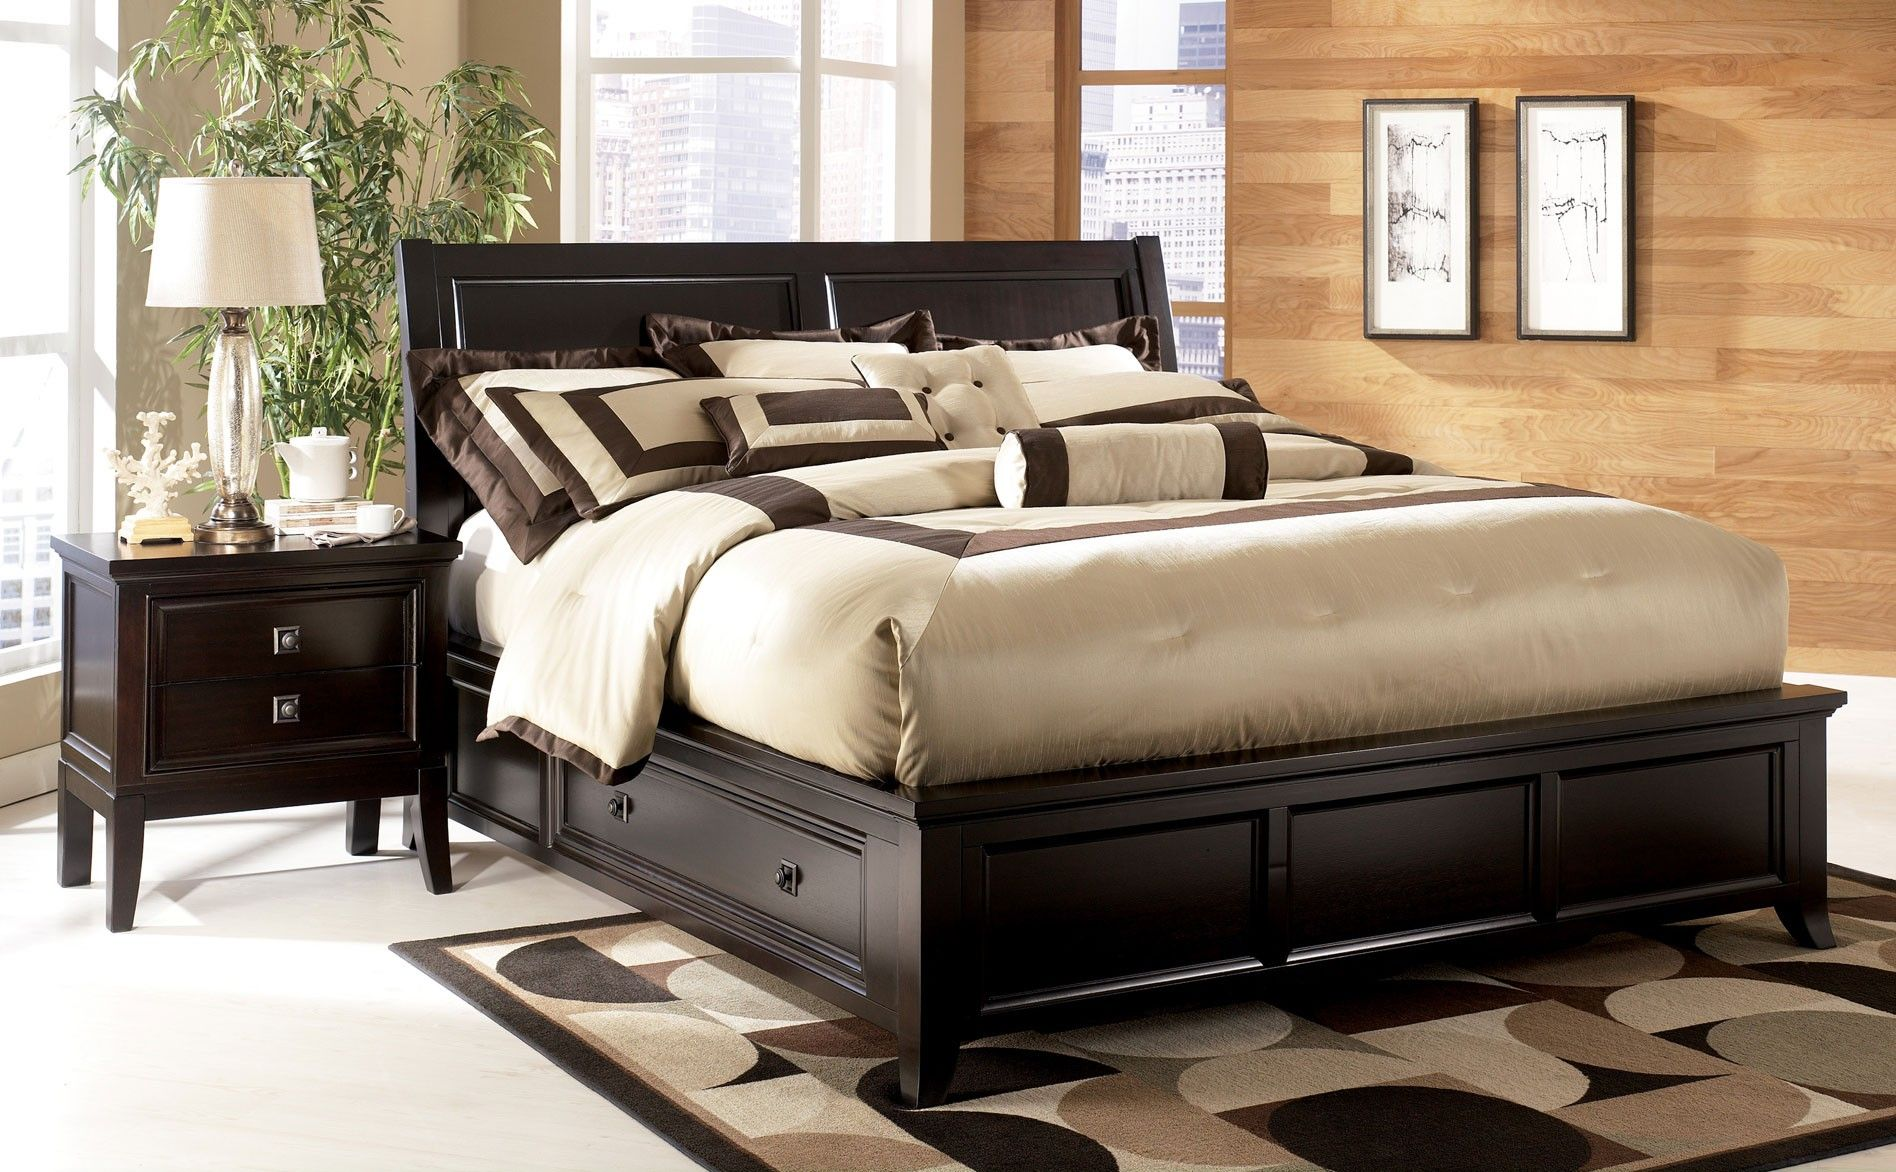 Ashley Martini King Sleigh Bed With Storage | Clearance Outlet | Raleigh  Furniture | Home Comfort